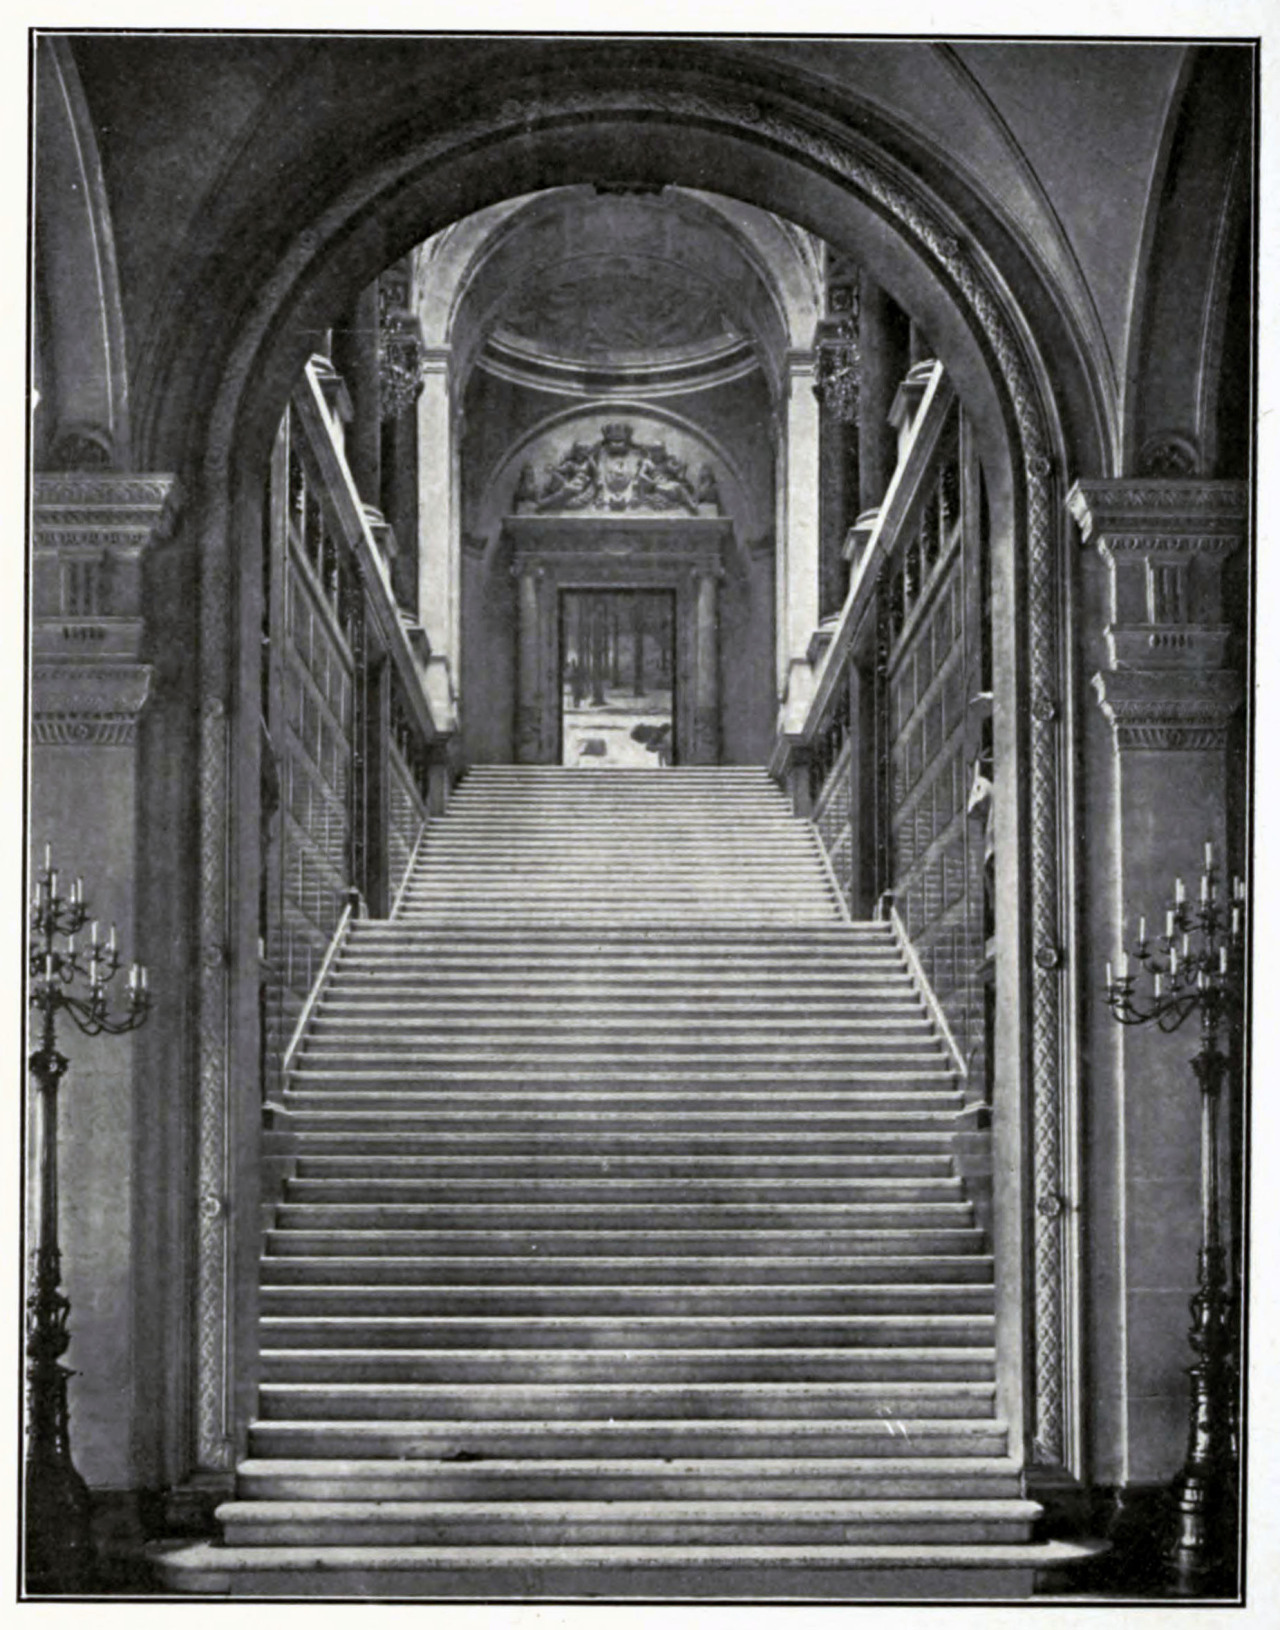 The grand staircase inside the Hôtel de Ville, Paris